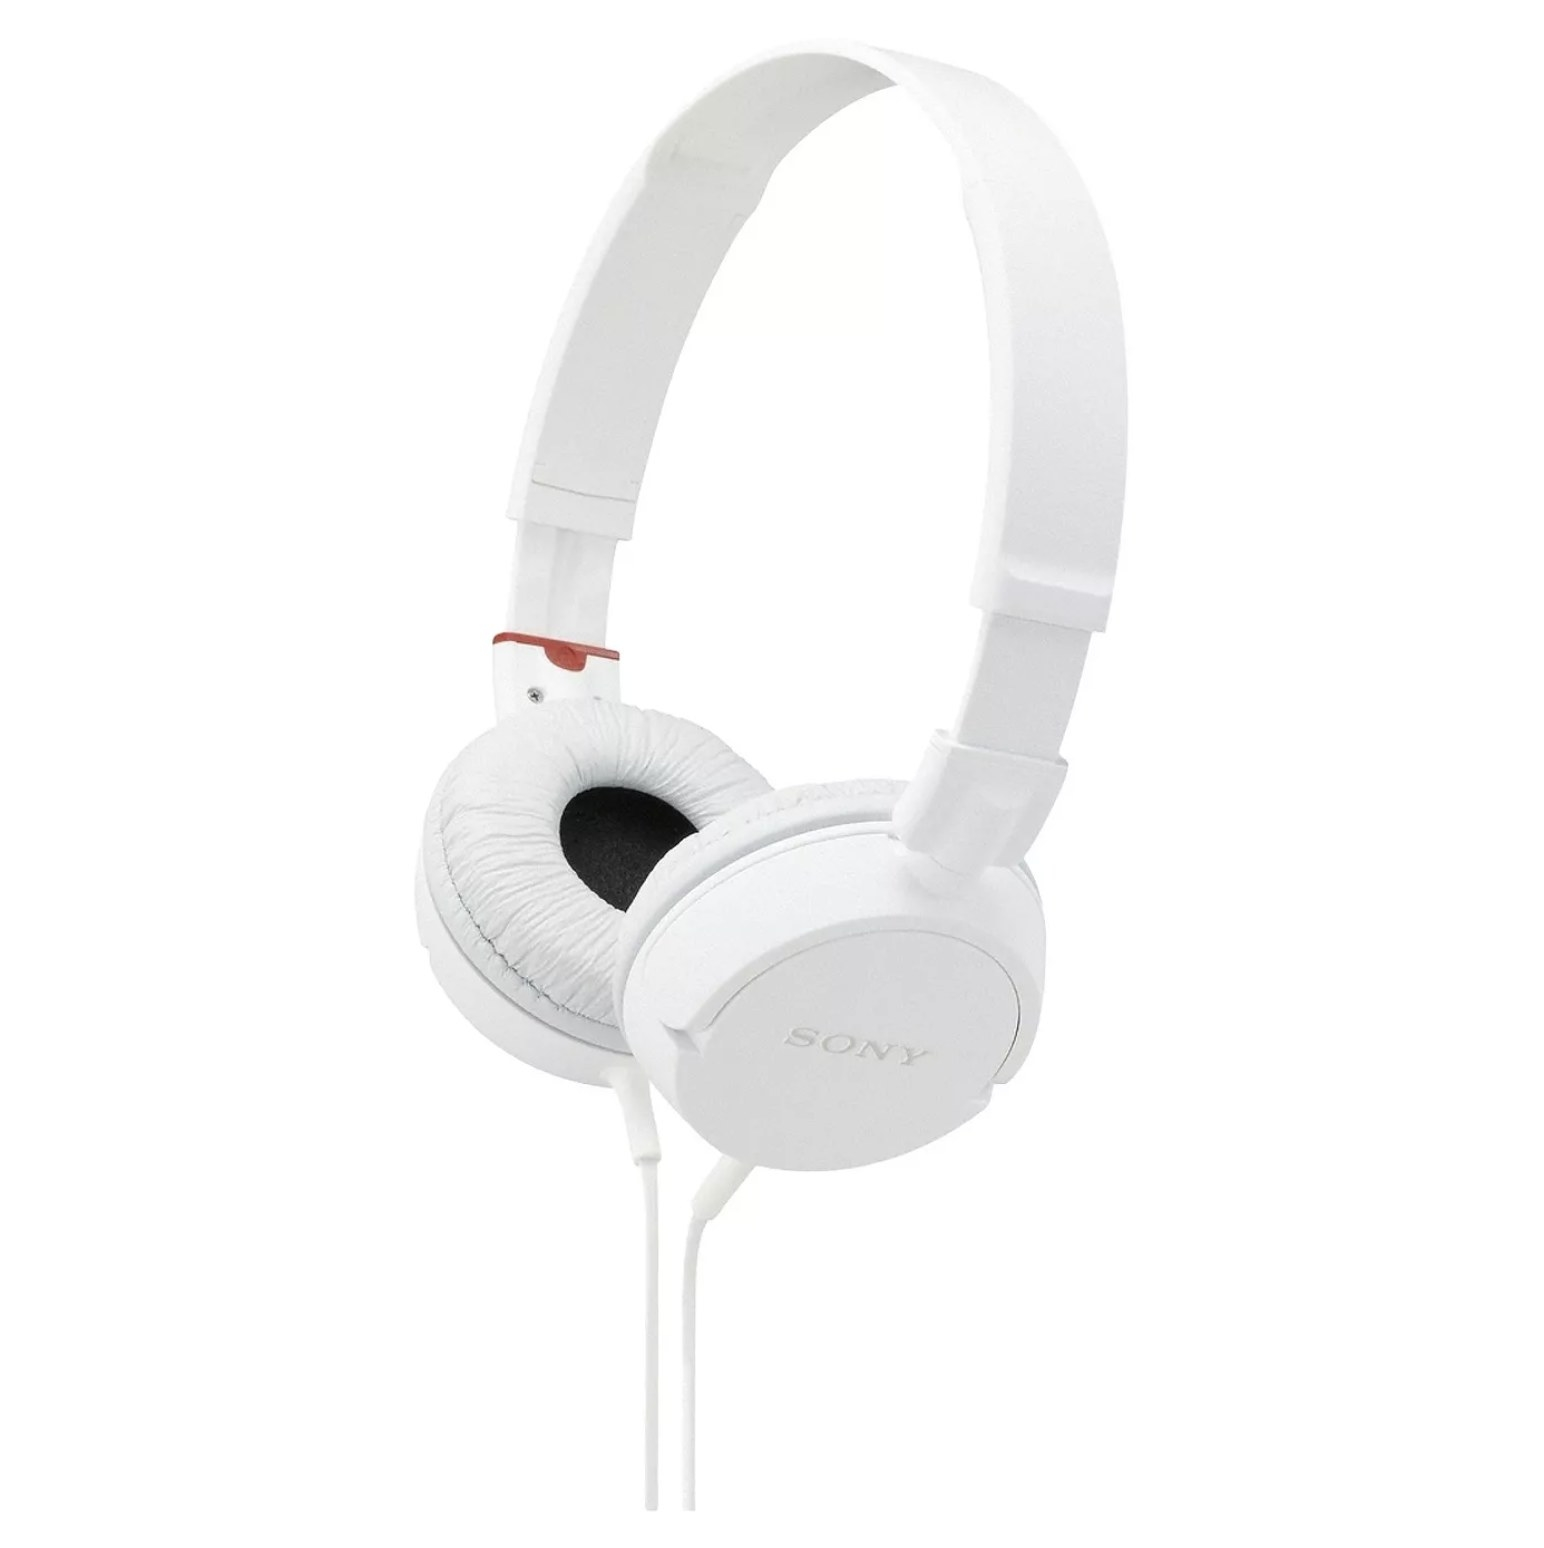 A pair of white Sony wired headphones